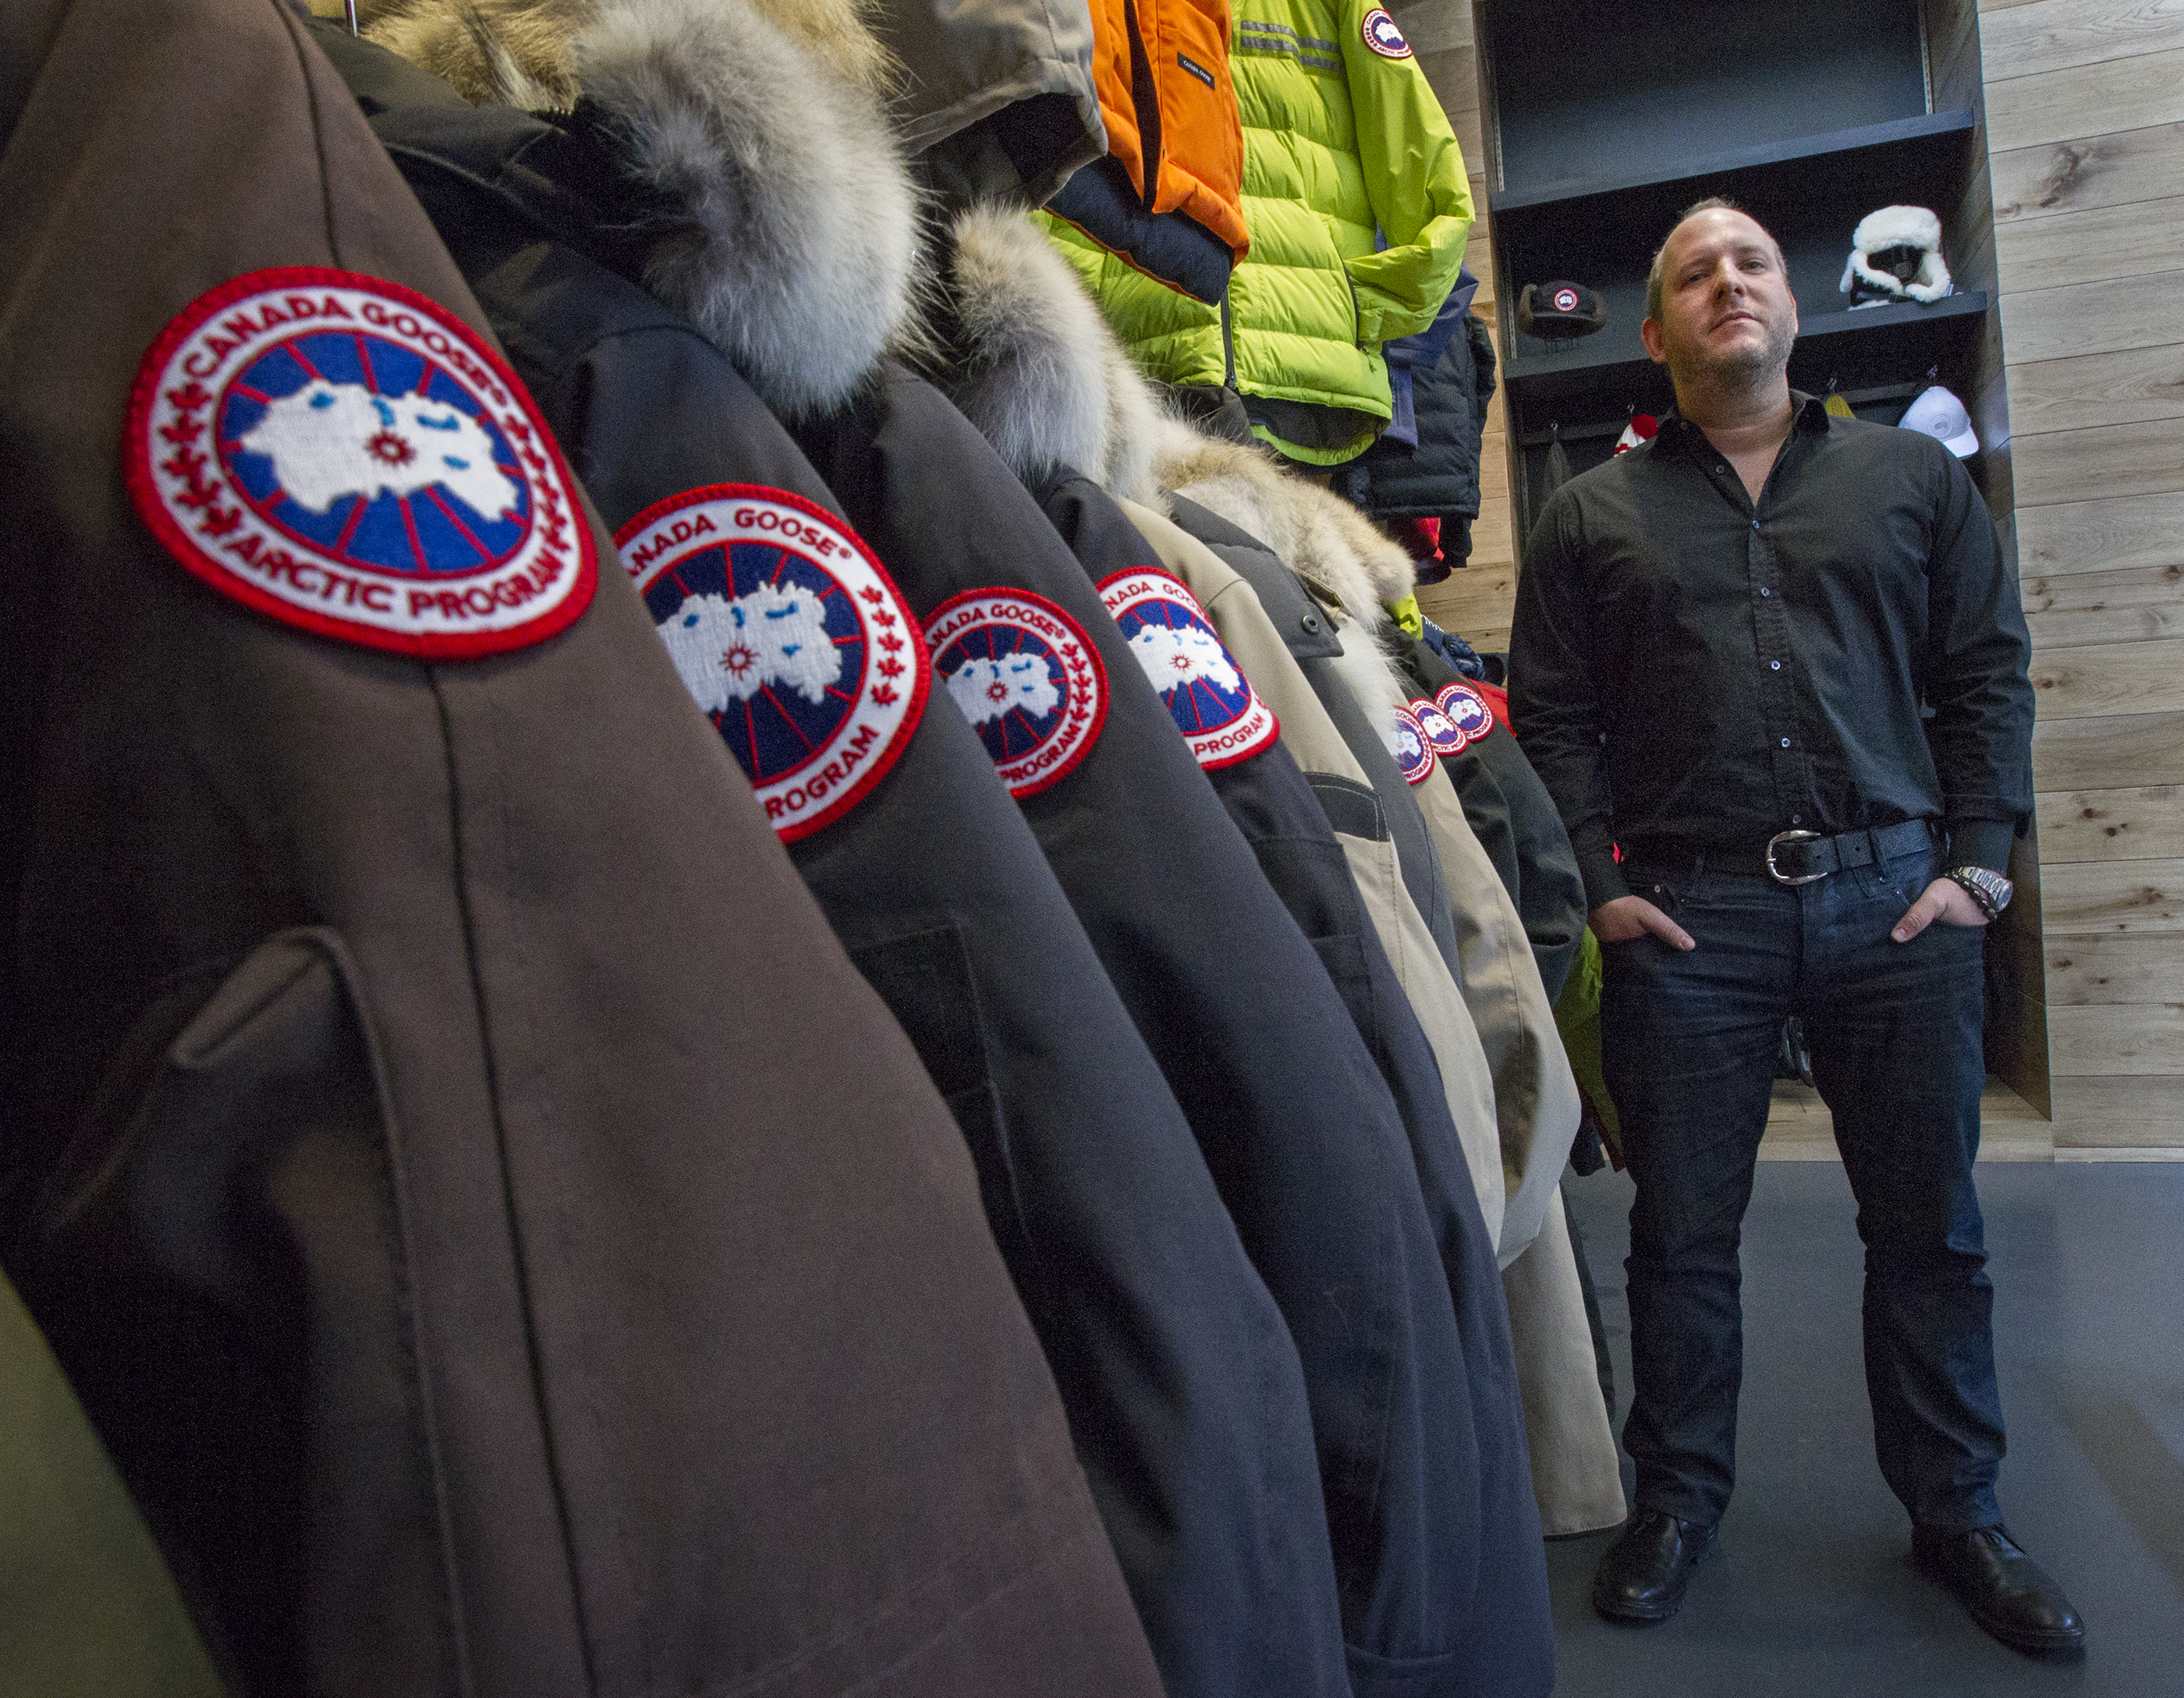 canada goose price increase 2016